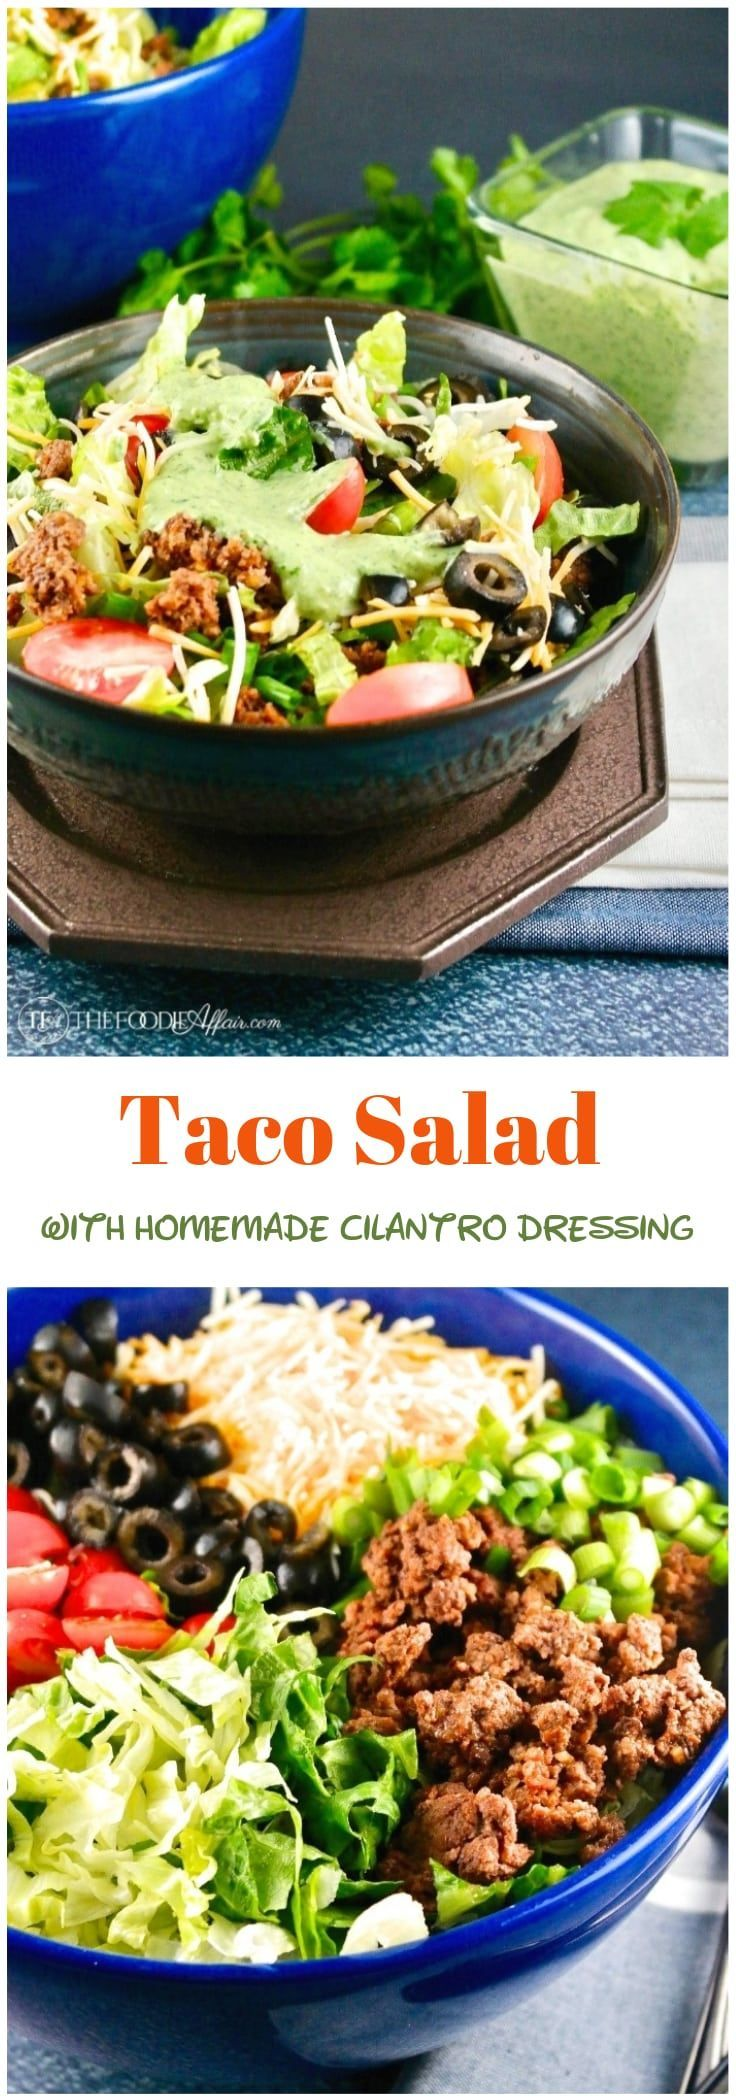 Taco salad with seasoned ground beef and all your favorite toppings served with an easy homemade creamy cilantro dressing. Enjoy as a main meal at your next Fiesta! #taco #salad #cilantro #dressing #lowcarb